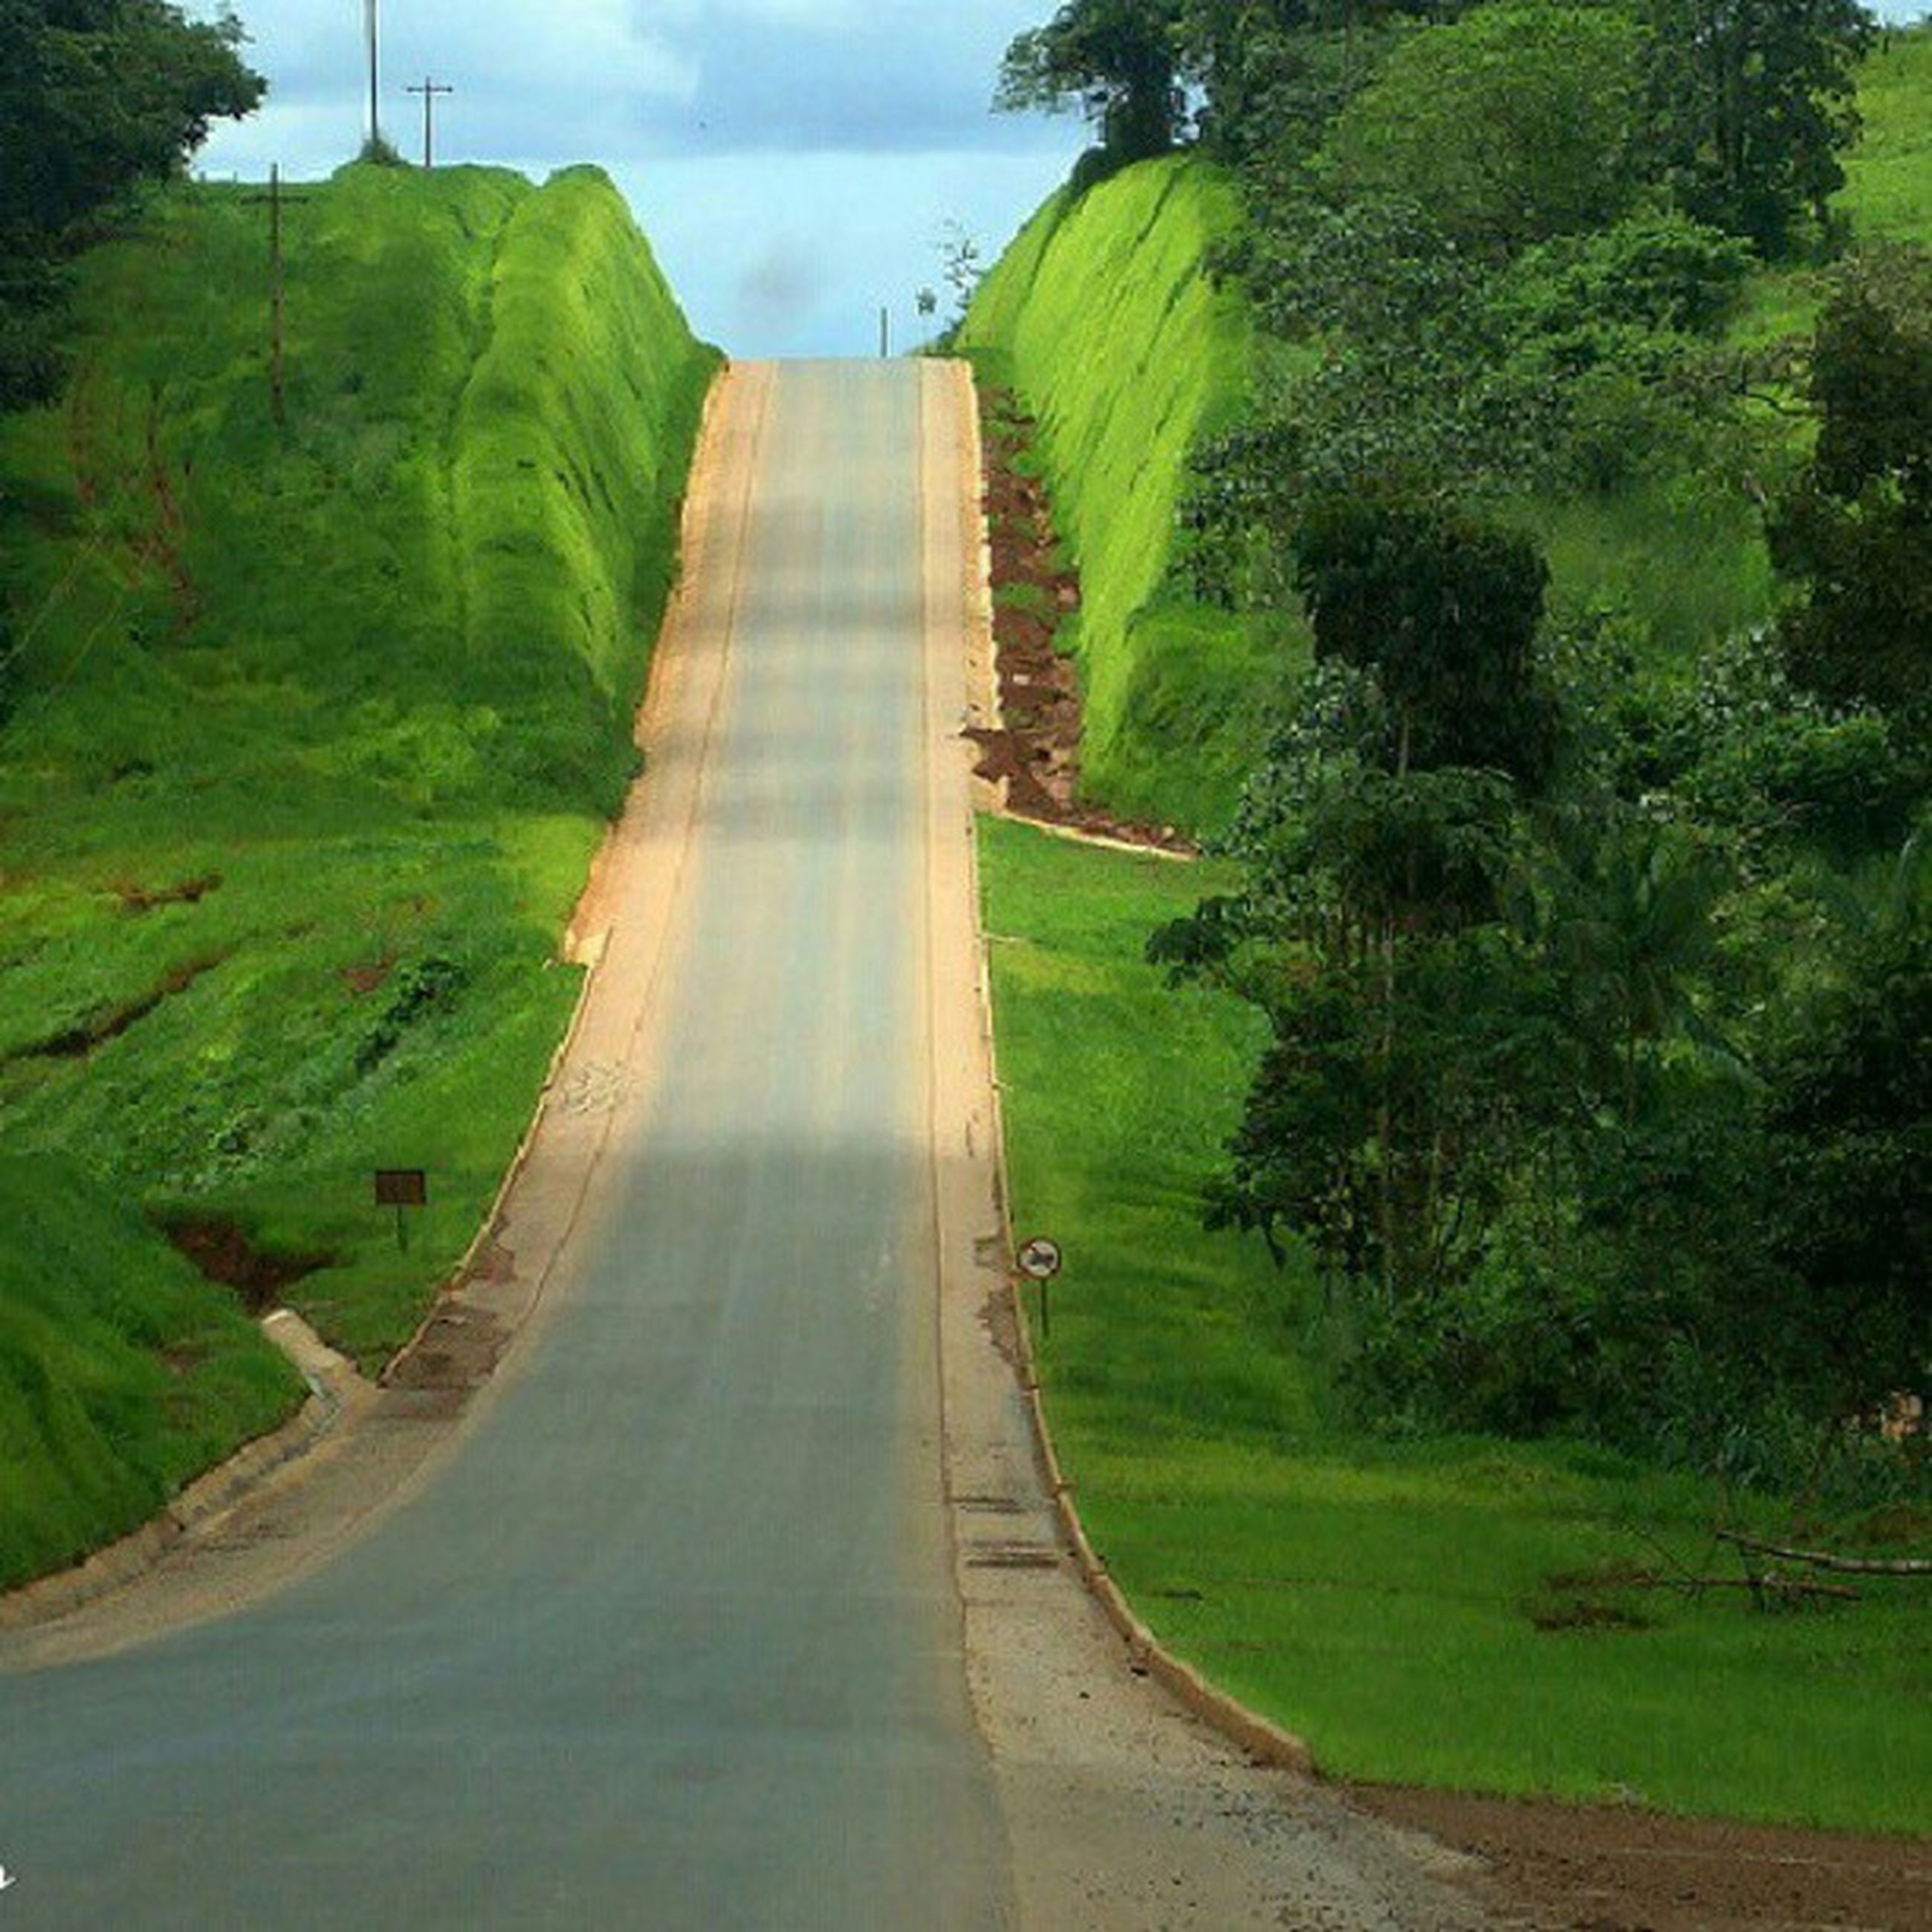 green color, the way forward, grass, tree, sky, growth, road, diminishing perspective, green, landscape, vanishing point, nature, tranquility, plant, tranquil scene, built structure, day, transportation, empty, architecture